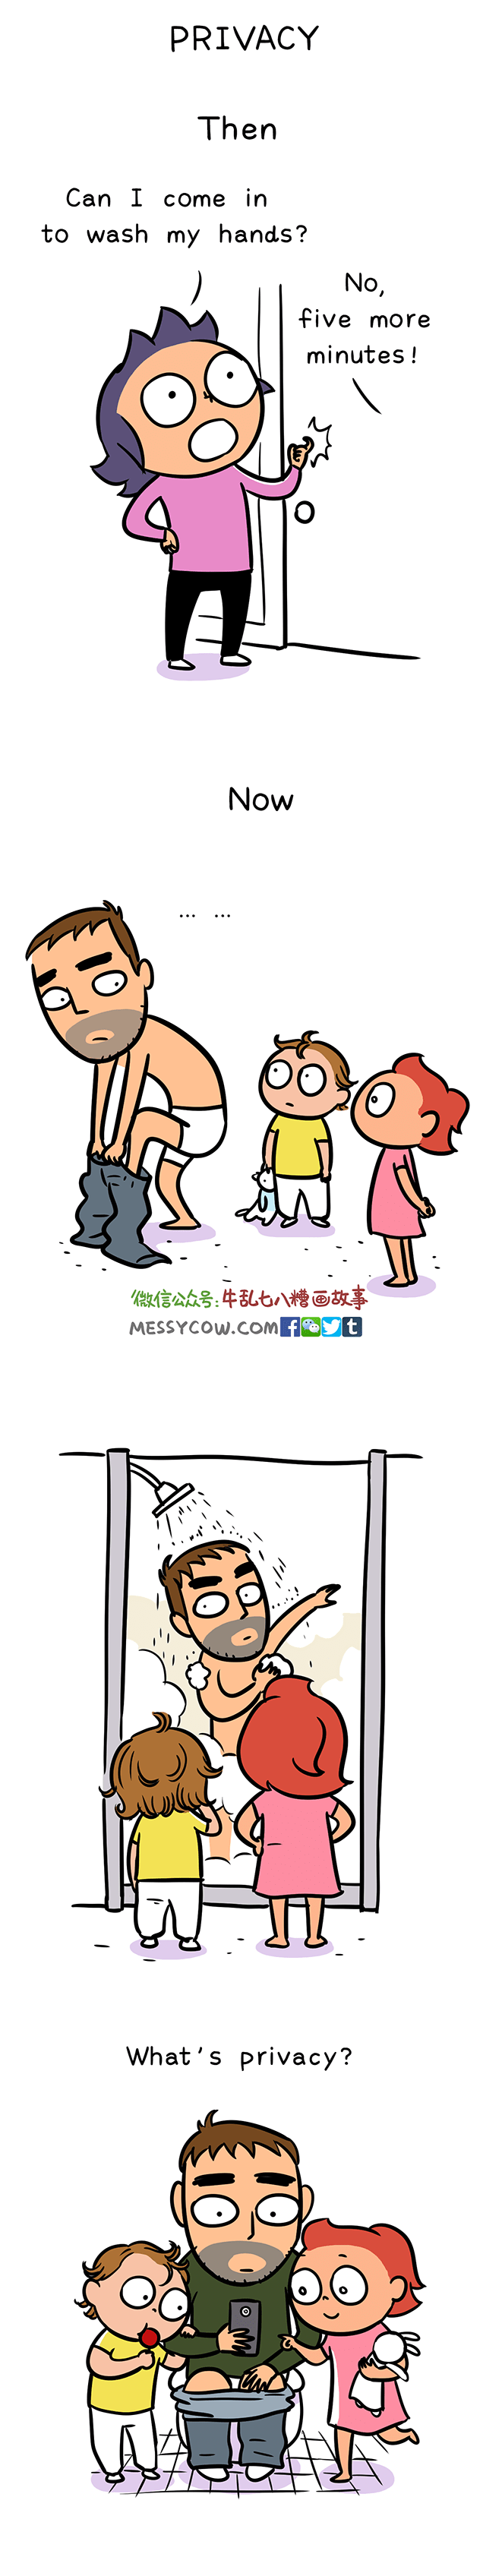 Cartoon - PRIVACY Then Can I come in to wash my hands? No, five more minutes! Now 做信公众号:牛乱もハ糟画故事 MESSYCOW.COM®9t ....! What's privacy?